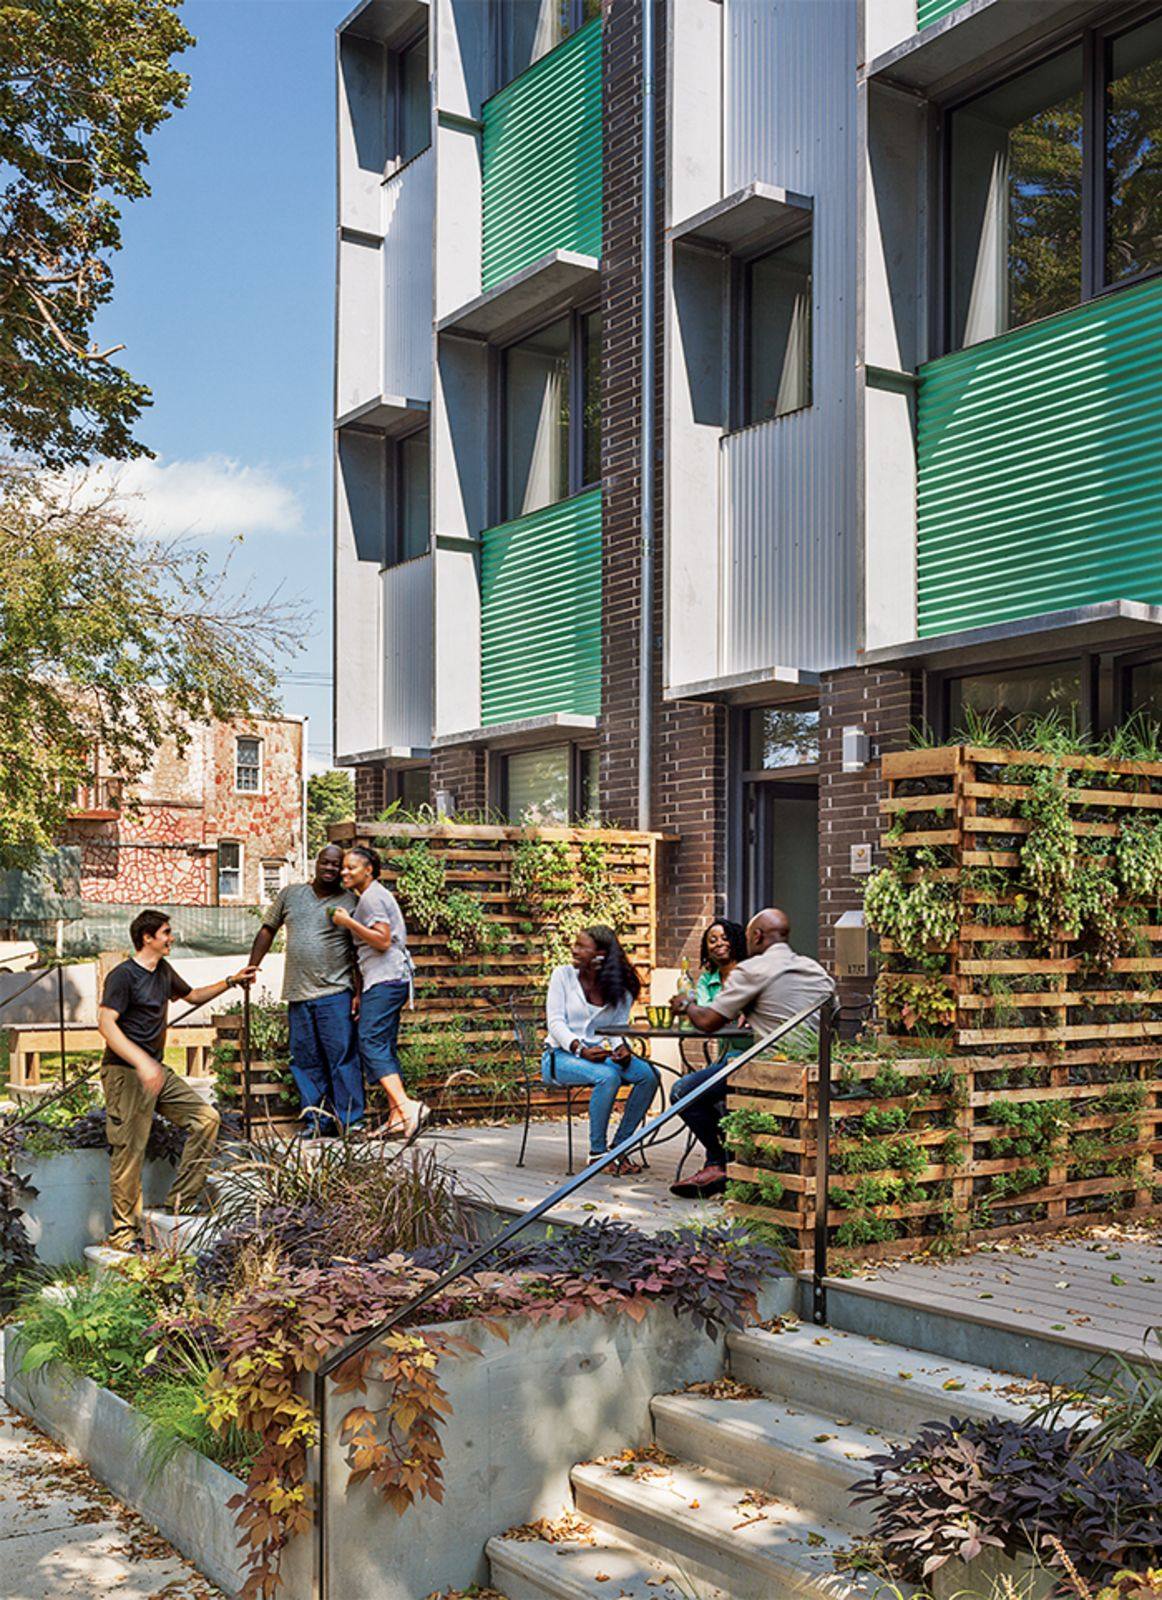 Super Green Affordable Housing Introduces Passive Design To The Masses Passive Design Affordable Housing Passive House Design